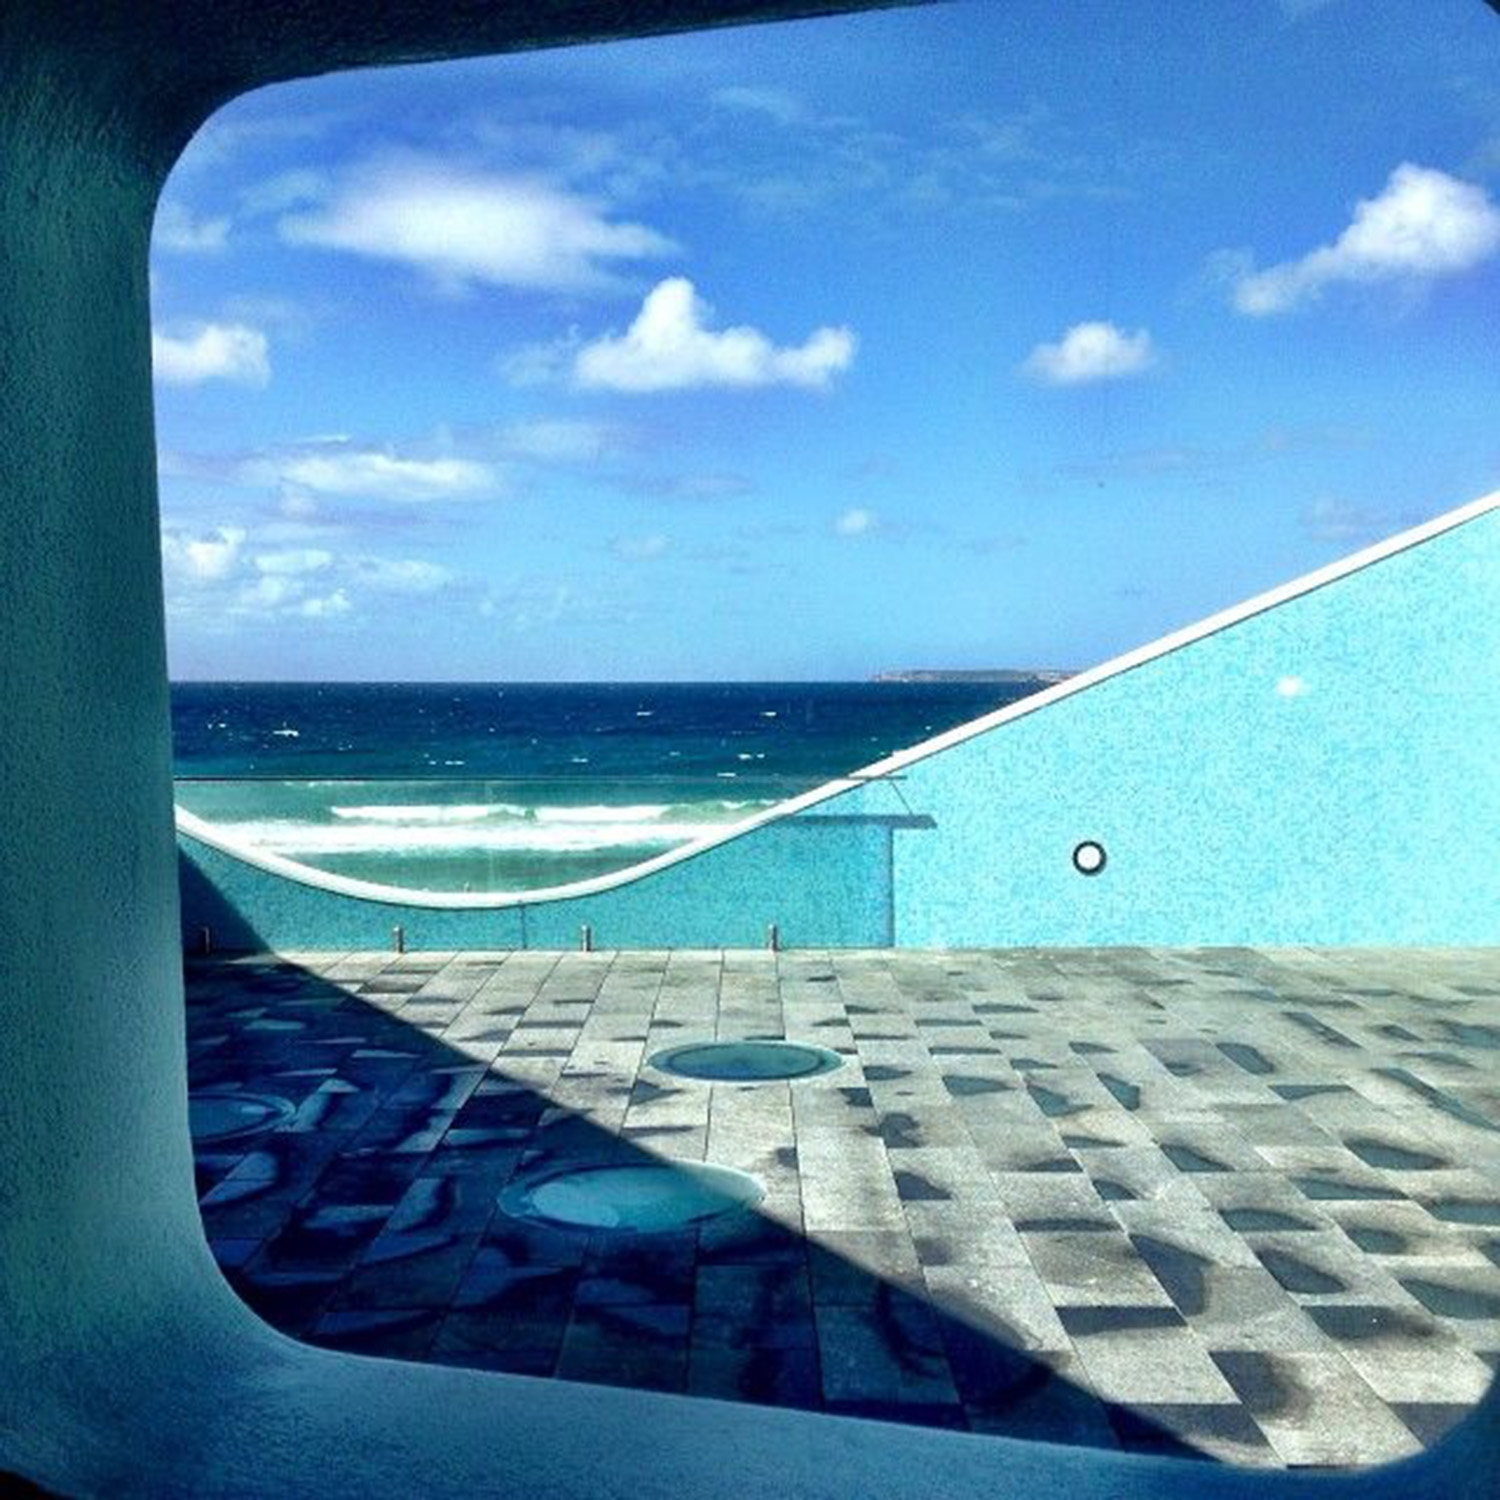 Looking out at the bright blue ocean from North Bondi Surf Club